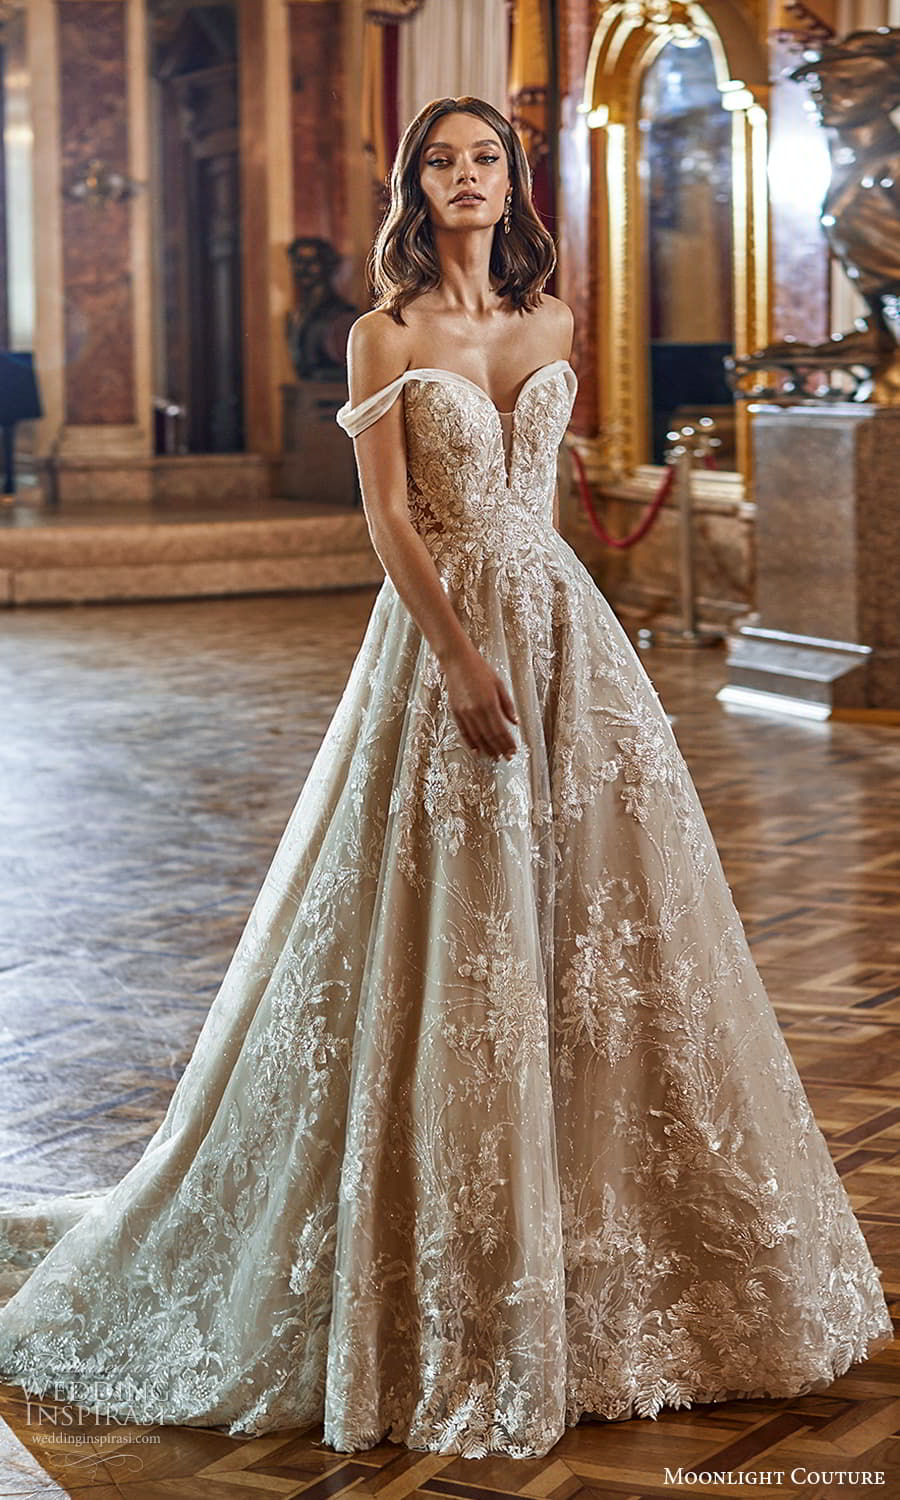 moonlight couture fall 2021 bridal off shoulder straps sweetheart neckline heavily embellished bodice a line ball gown wedding dress chapel trian (1) mv